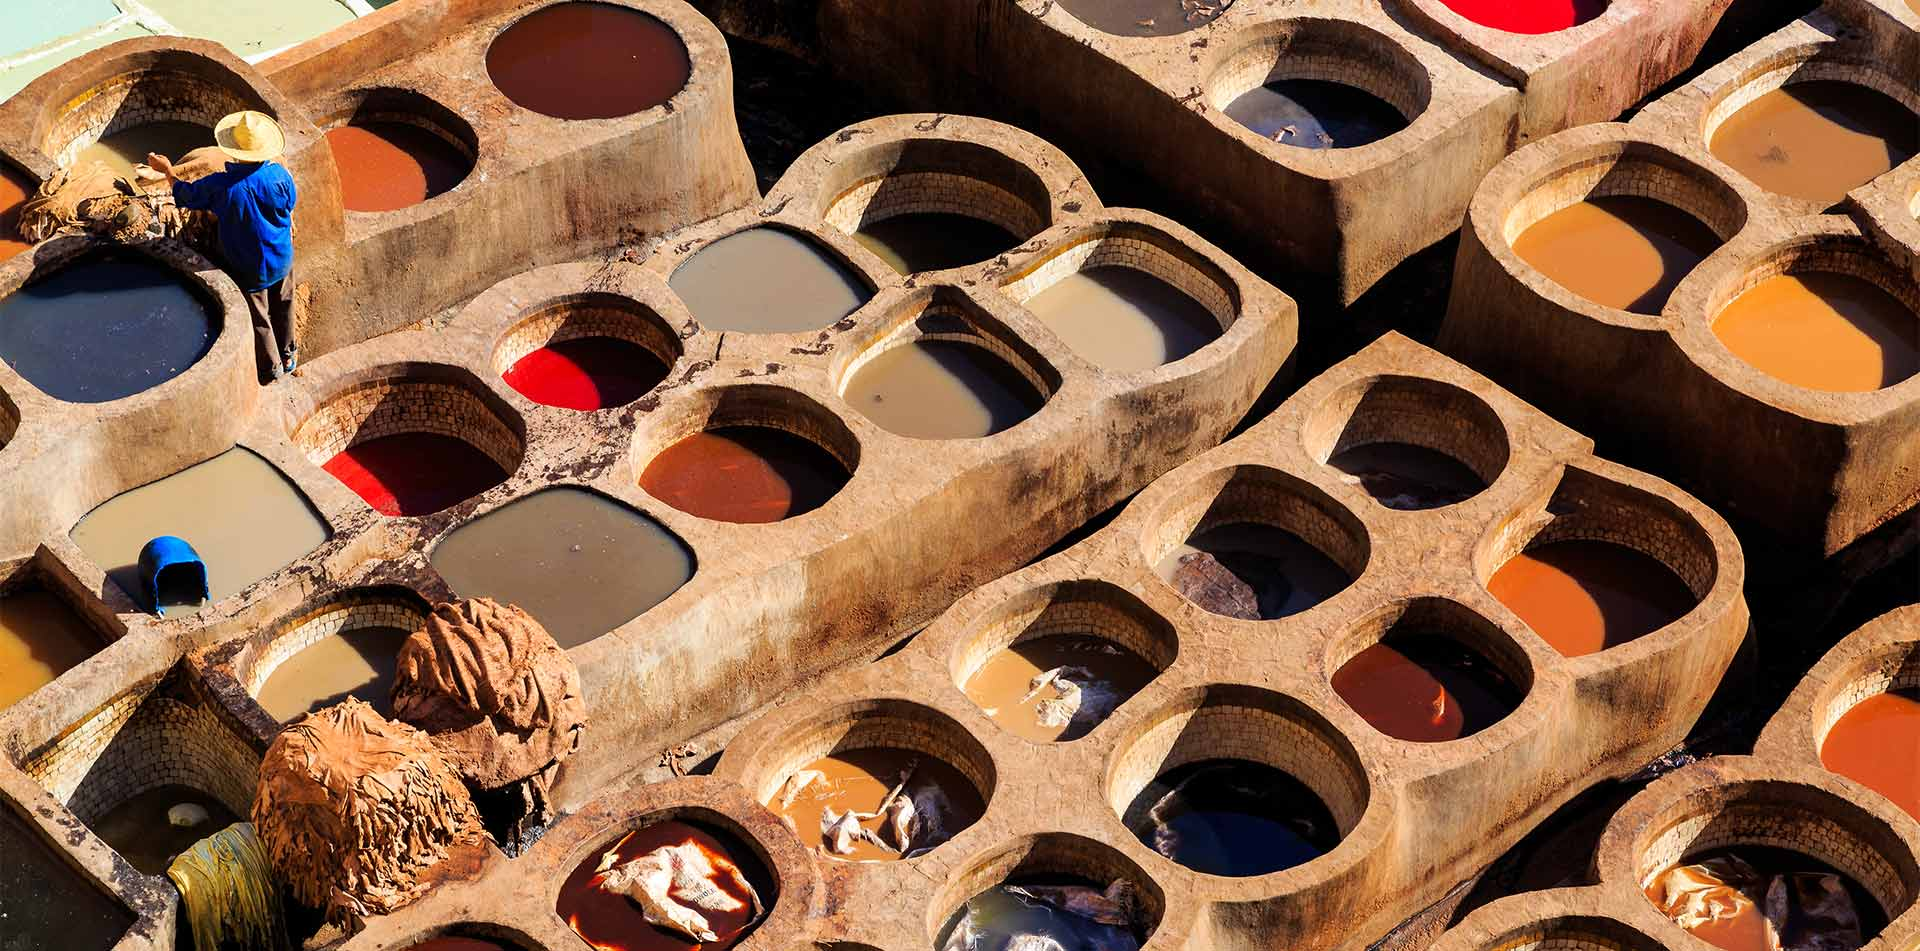 Africa Morocco Fes historic traditional tannery man soaking leather in colorful dye - luxury vacation destinations